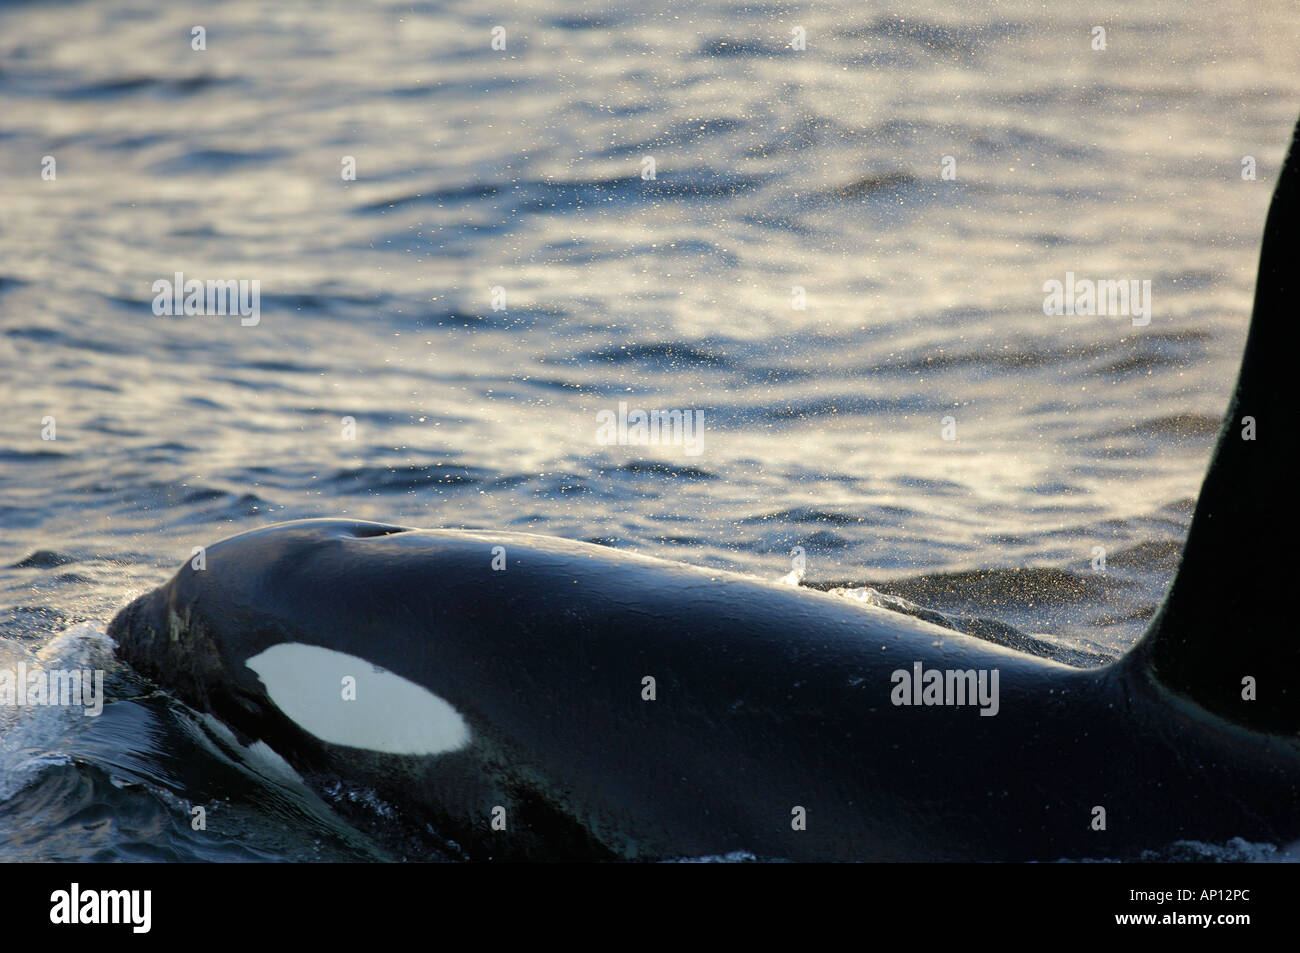 Male Orca or Killer whale (Orcinus orca) surfacing to breathe. - Stock Image